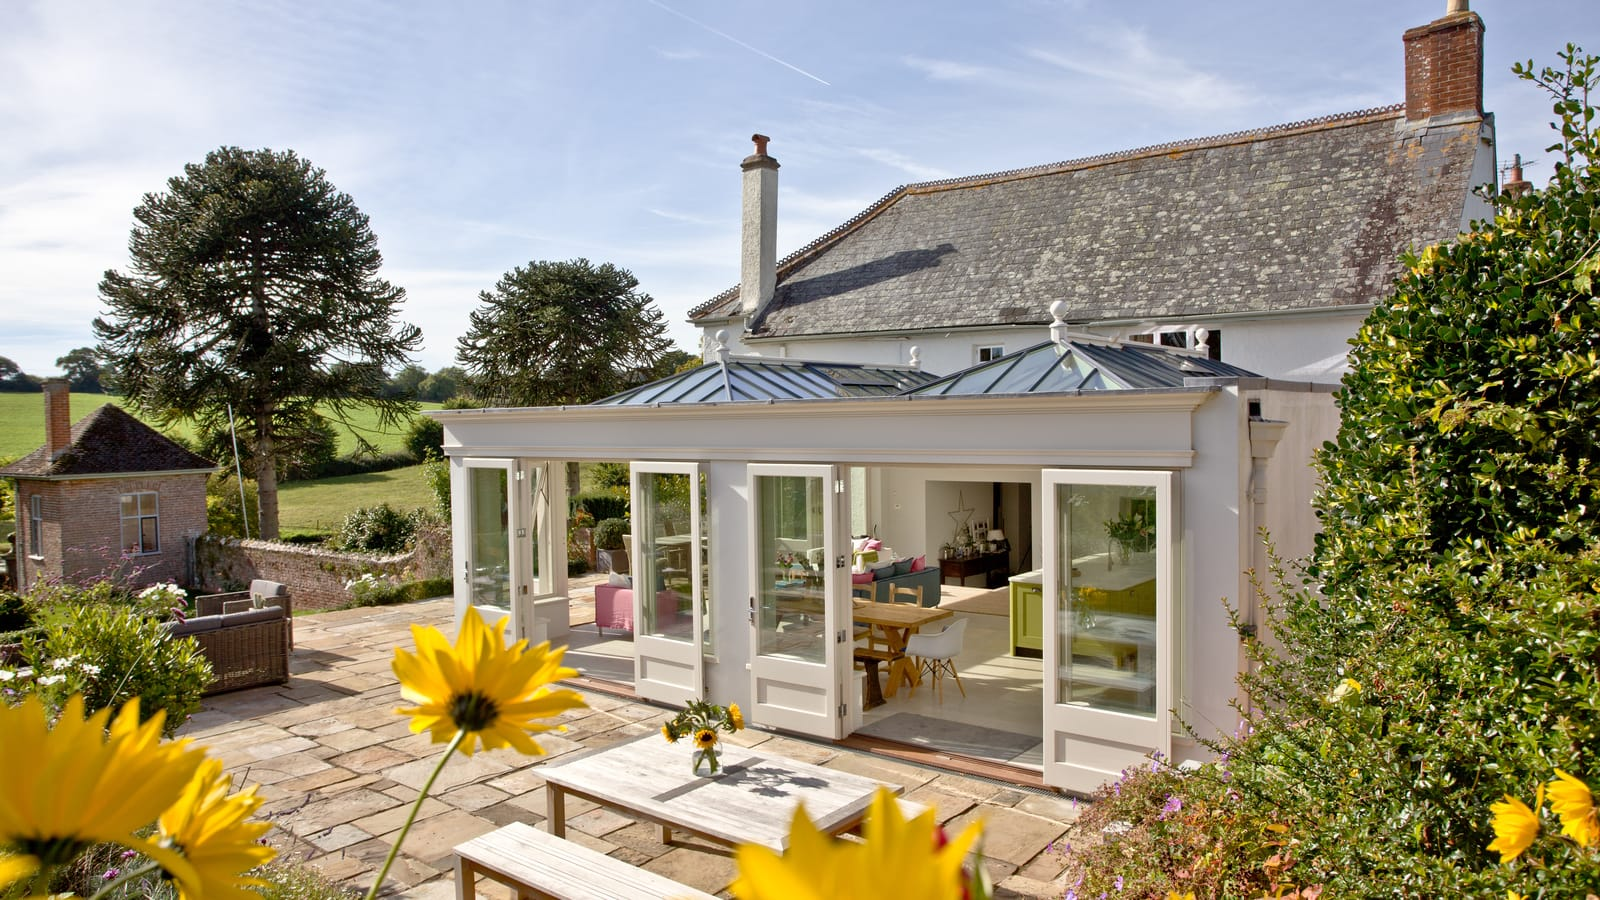 Do orangeries and garden rooms need foundations?